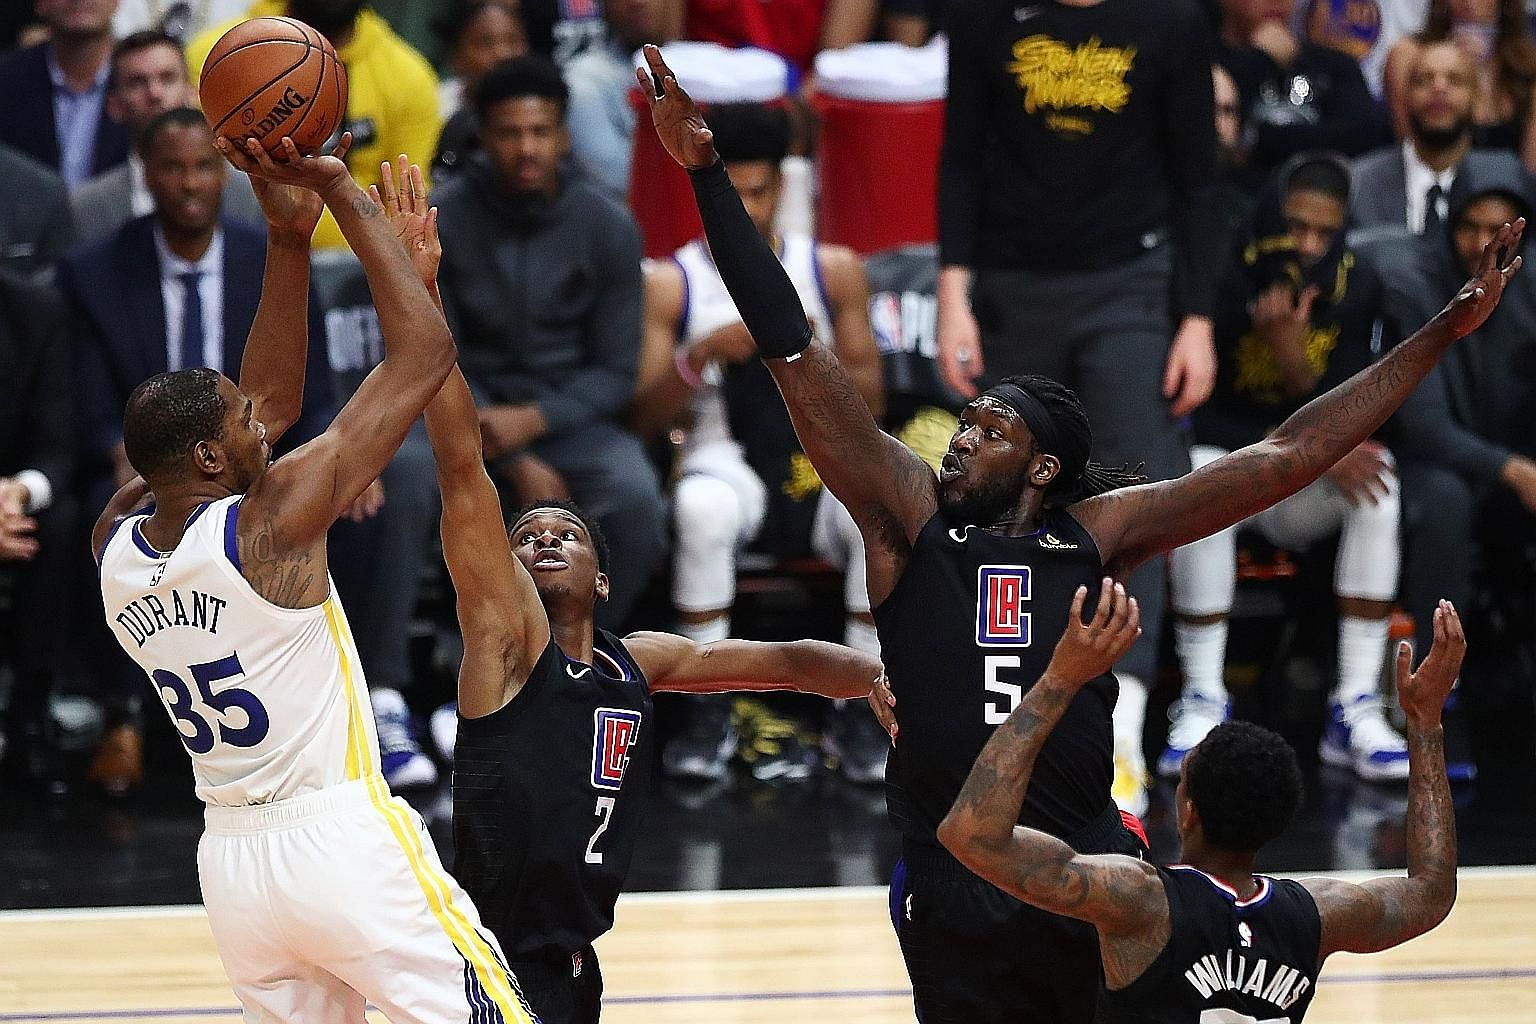 Golden State's Kevin Durant taking a shot despite the attention of the Clippers' (from left) Shai Gilgeous-Alexander, Montrezl Harrell and Lou Williams in Game 3 of their Western Conference first-round play-off series at Staples Centre on Thursday in Los